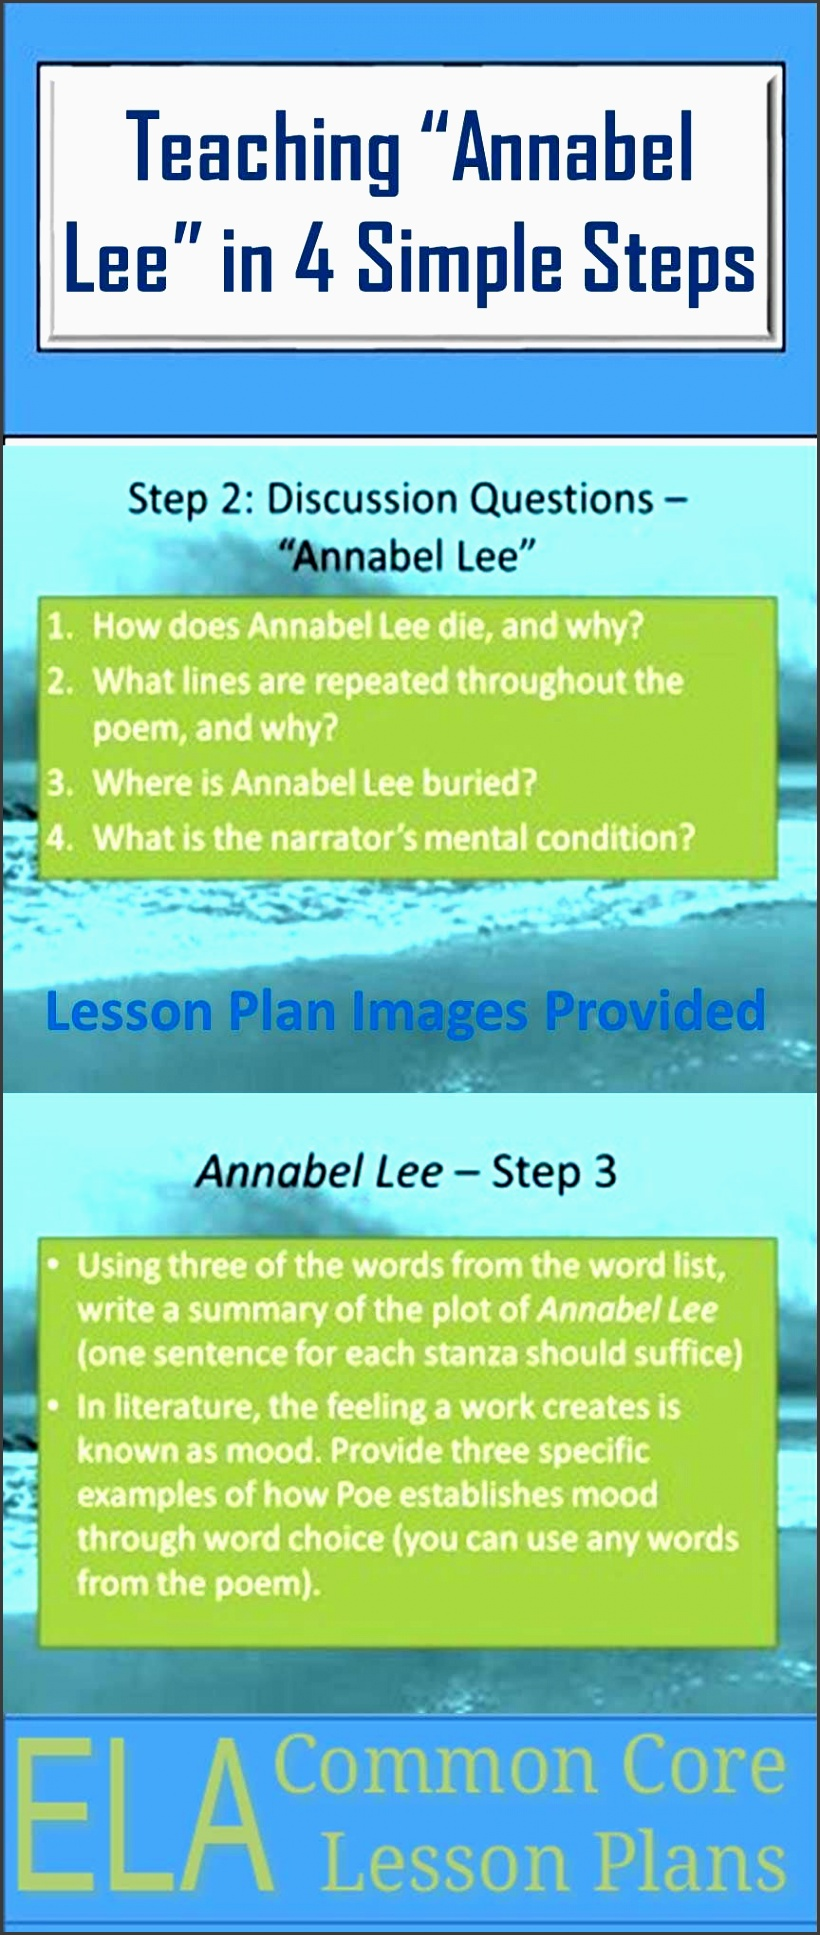 used this simple lesson plan for annabel lee by edgar allan poe last week